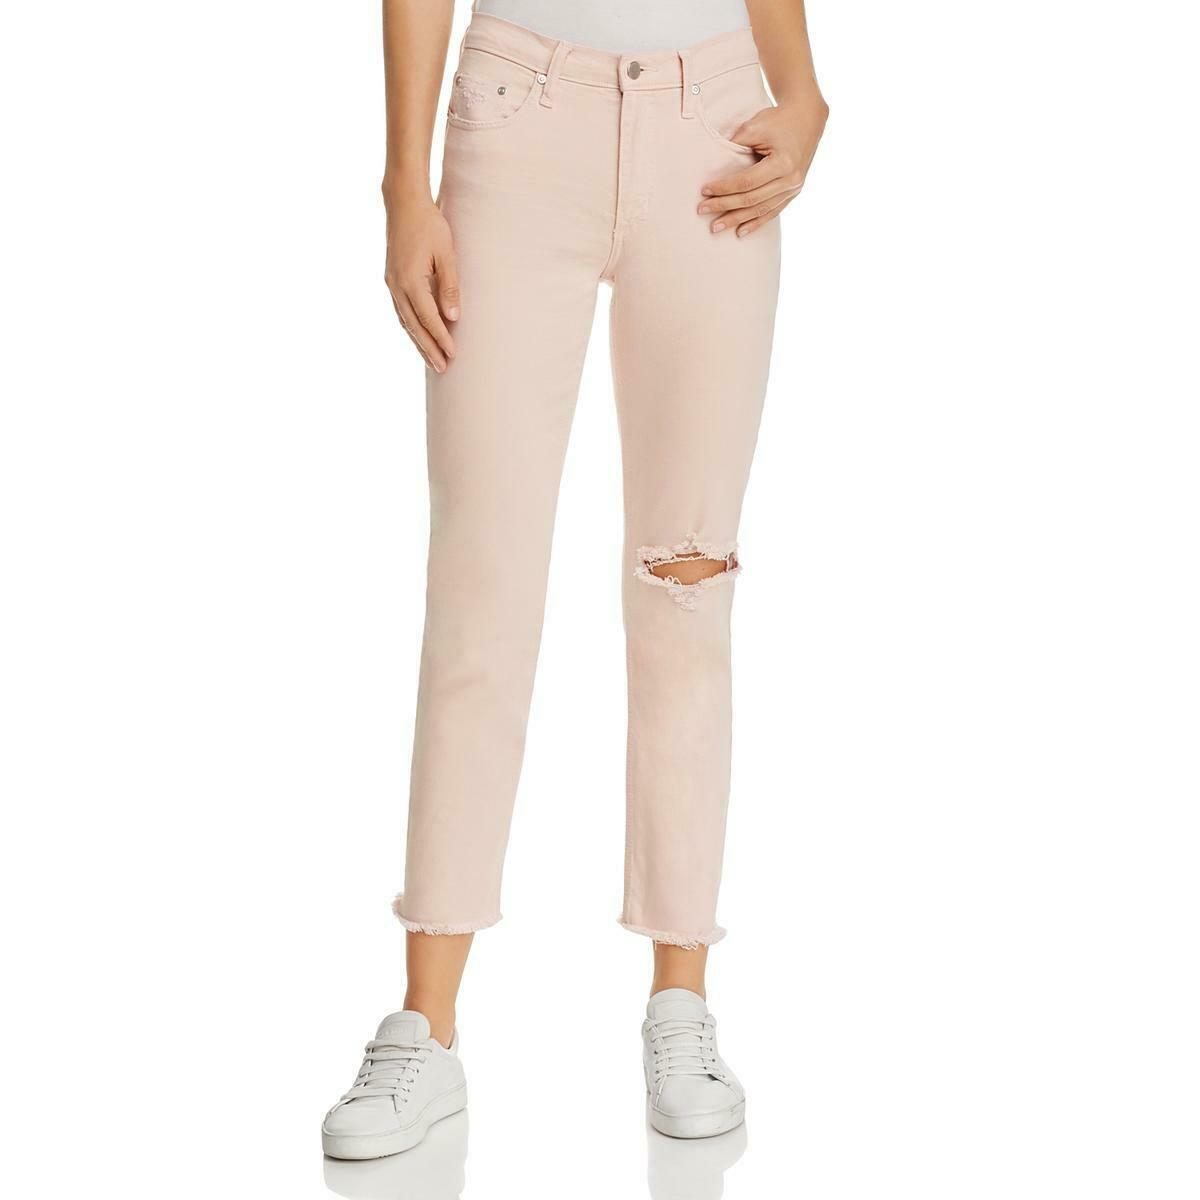 Nobody Womens Pink Fringe Mid-Rise Petals Wash Ankle Jeans 29 BHFO 7299